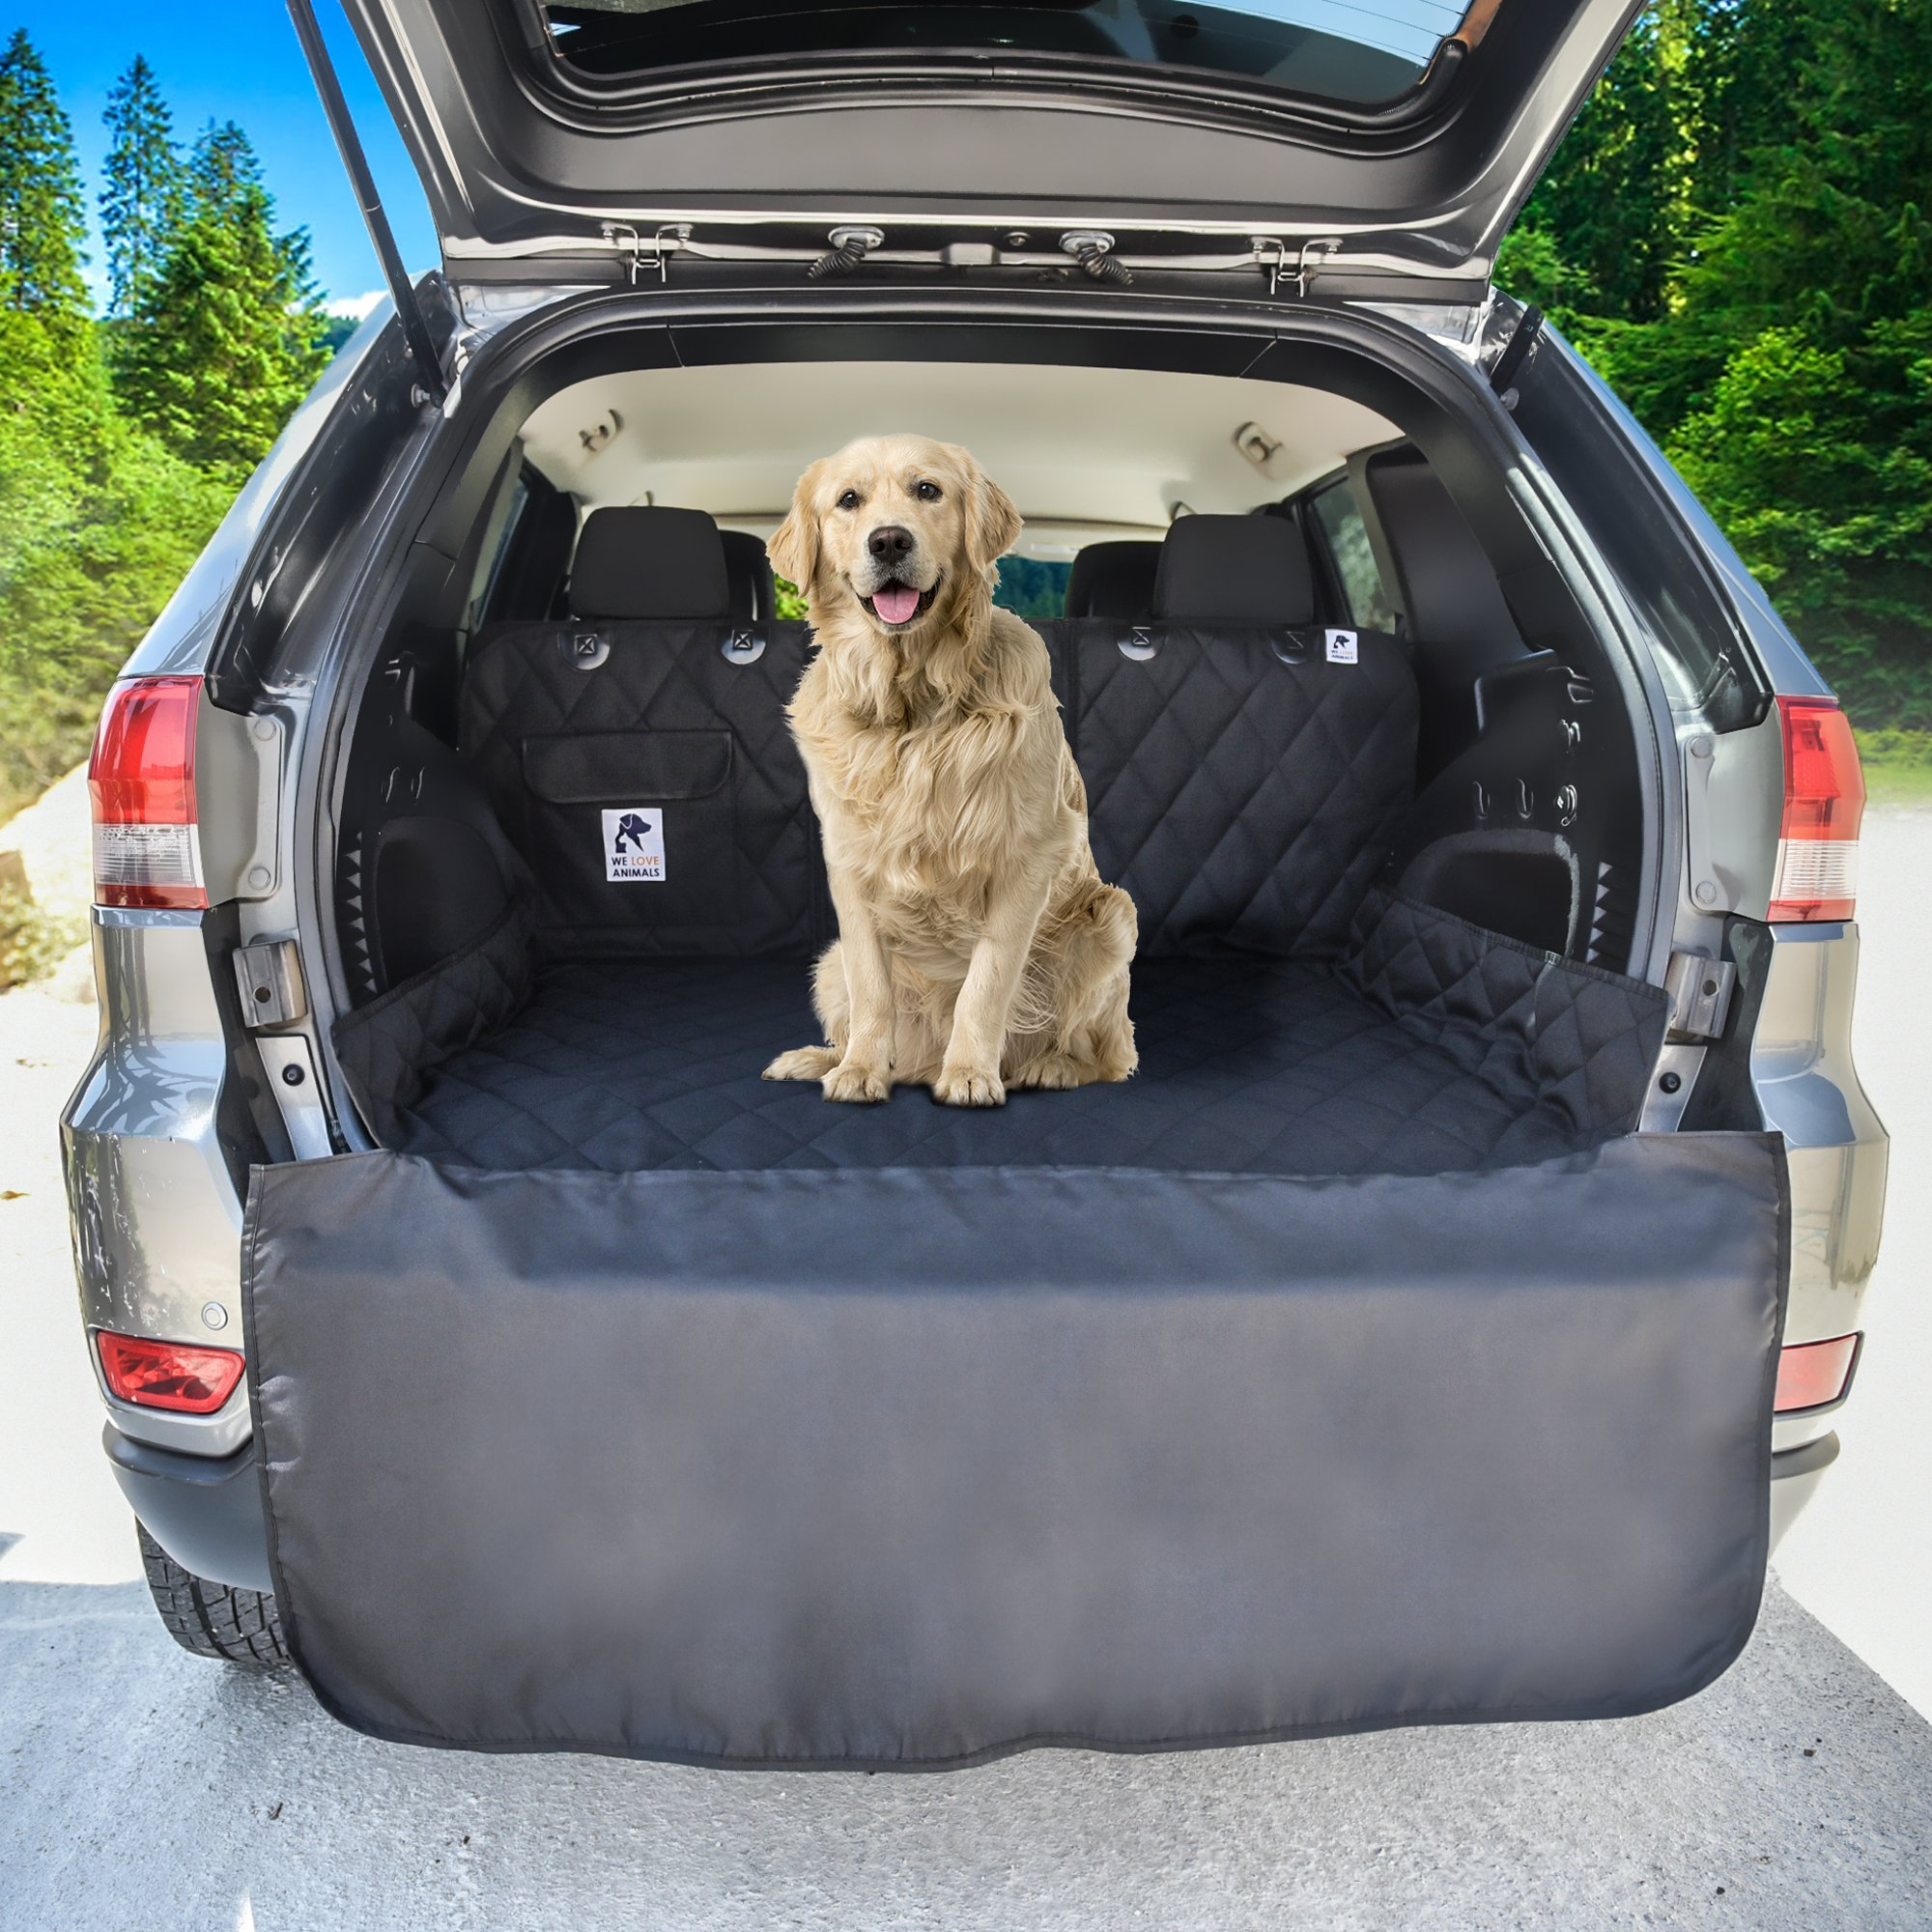 Dog Cargo Liner for SUV, Van, Truck & Jeep - Waterproof, Machine Washable, Nonslip Pet Seat Cover with Bumper Flap will keep your vehicle as clean as ever - XL, Universal Fit - BONUS Carry Bag by WE LOVE ANIMALS (Image #1)